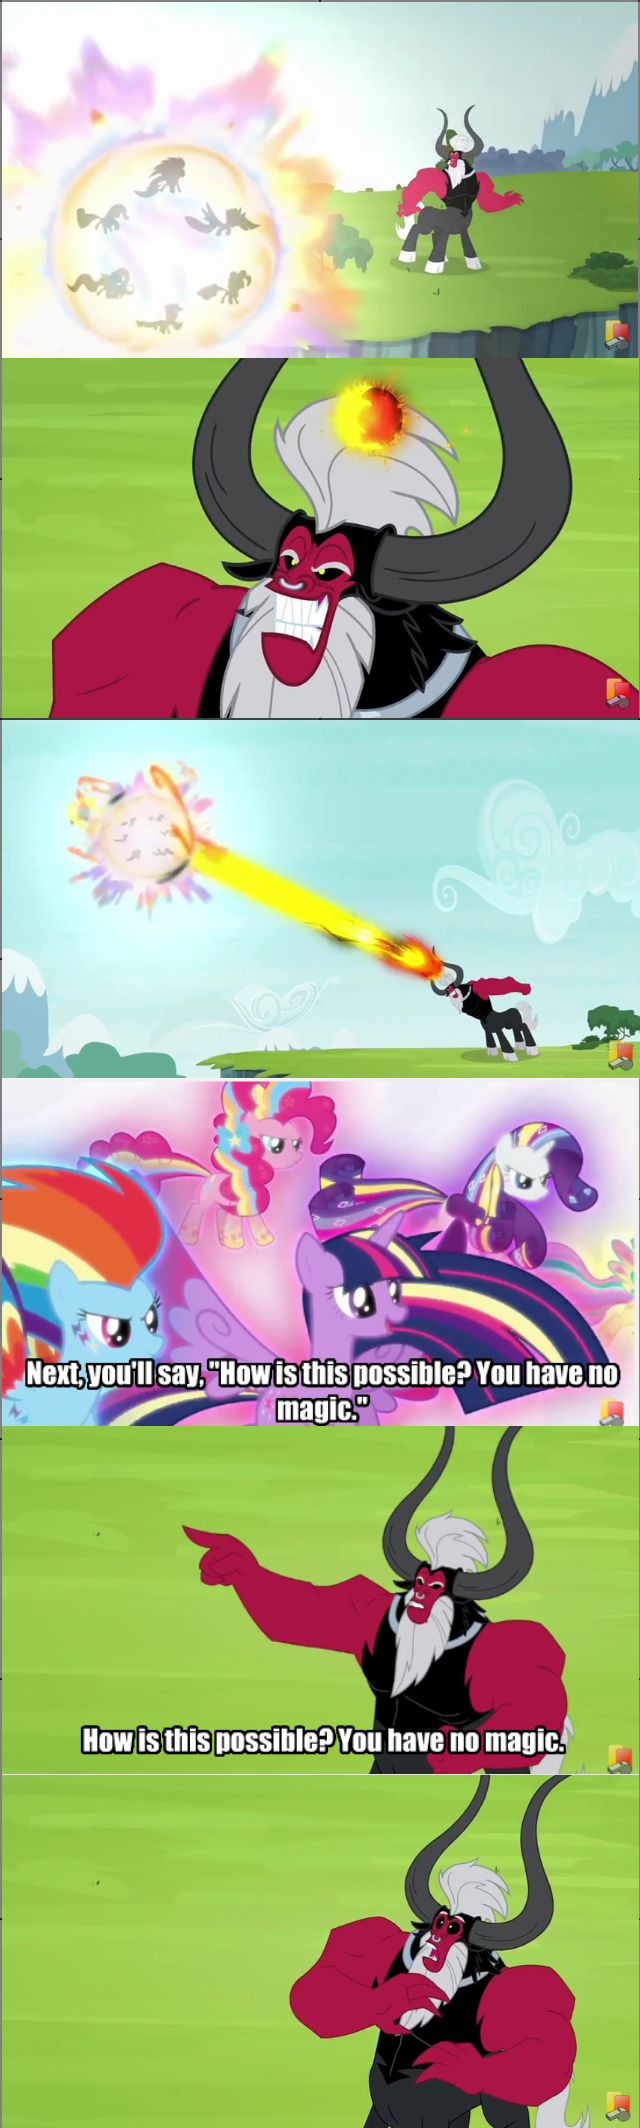 twilight sparkle tirek rainbow power twilight's kingdom mind reading - 8796957440